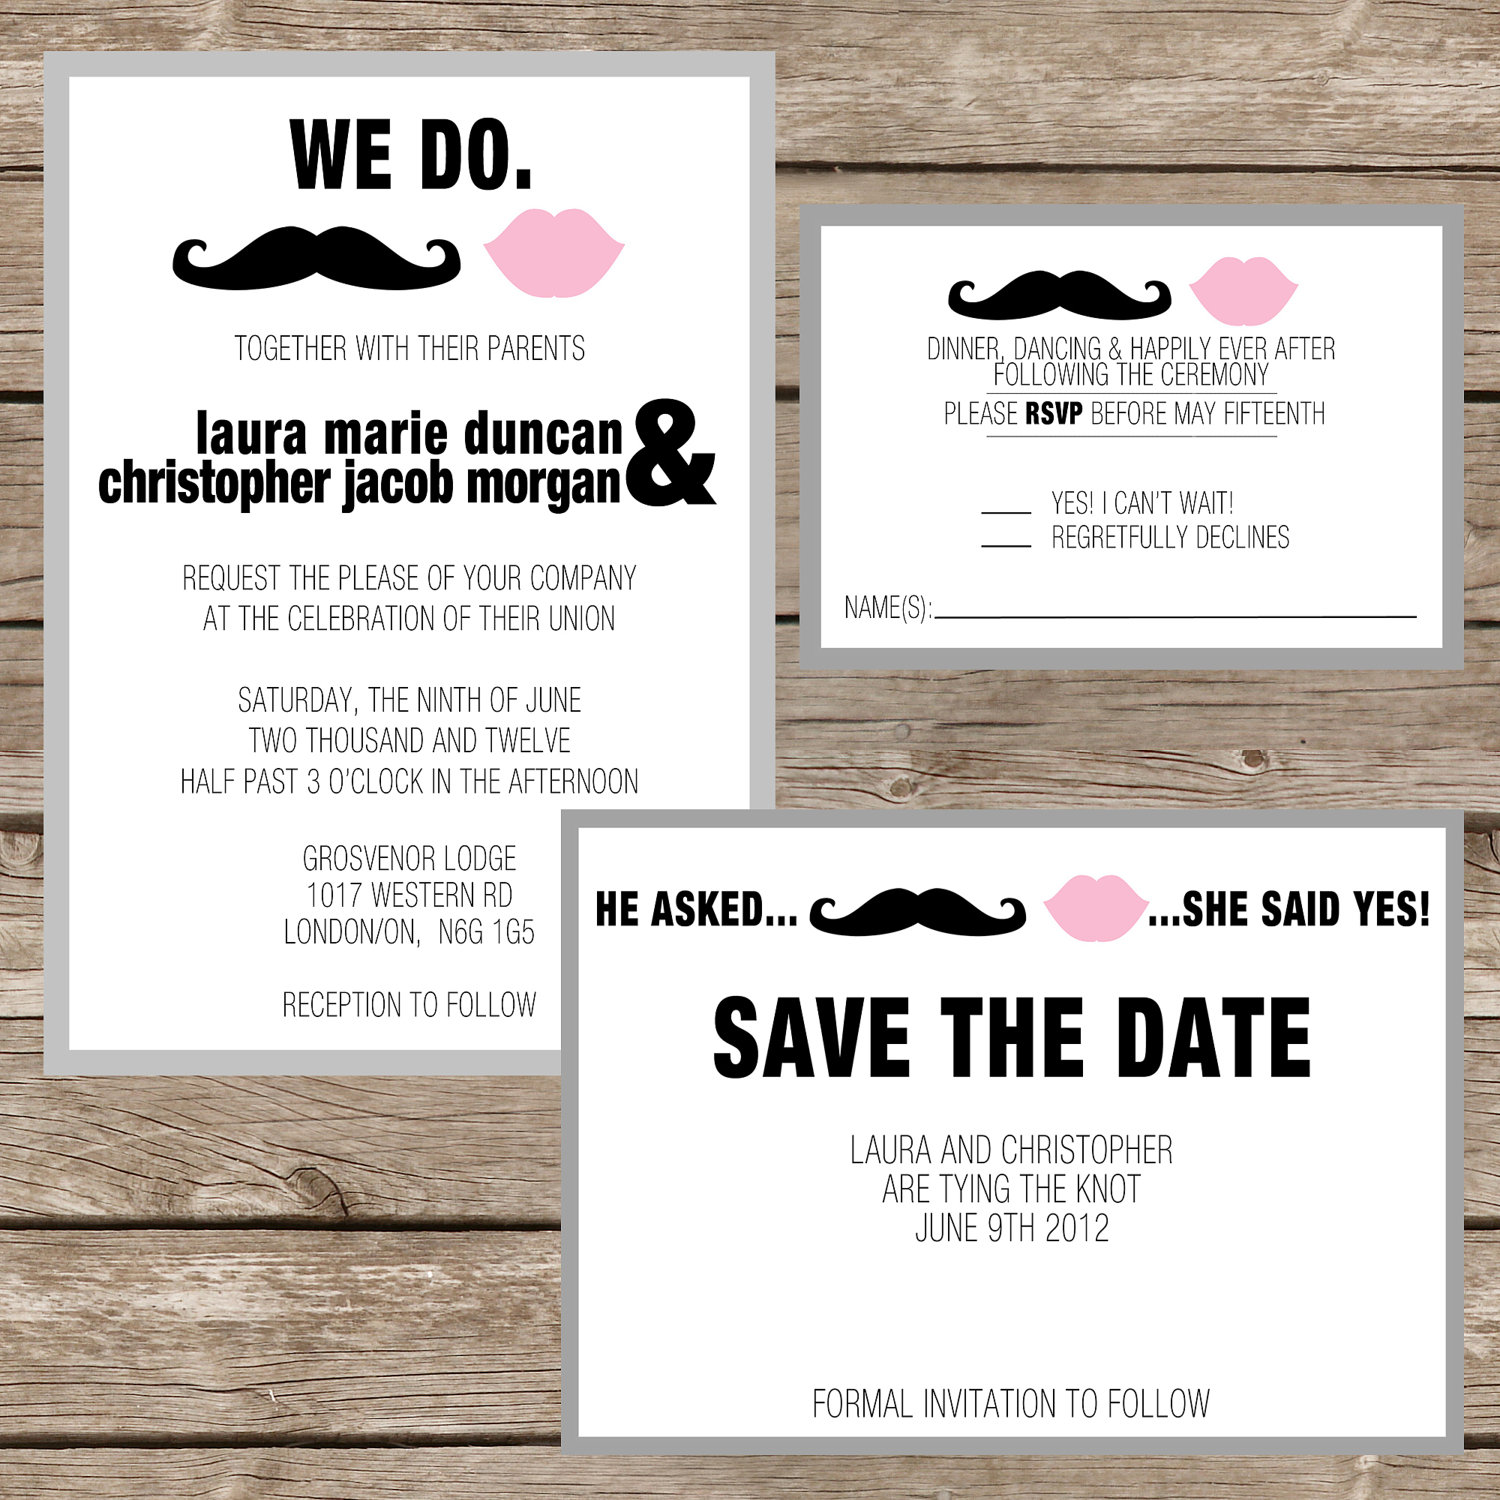 When Should Wedding Invitations Be Ordered: Destination Wedding Invitations: Five Destination Wedding